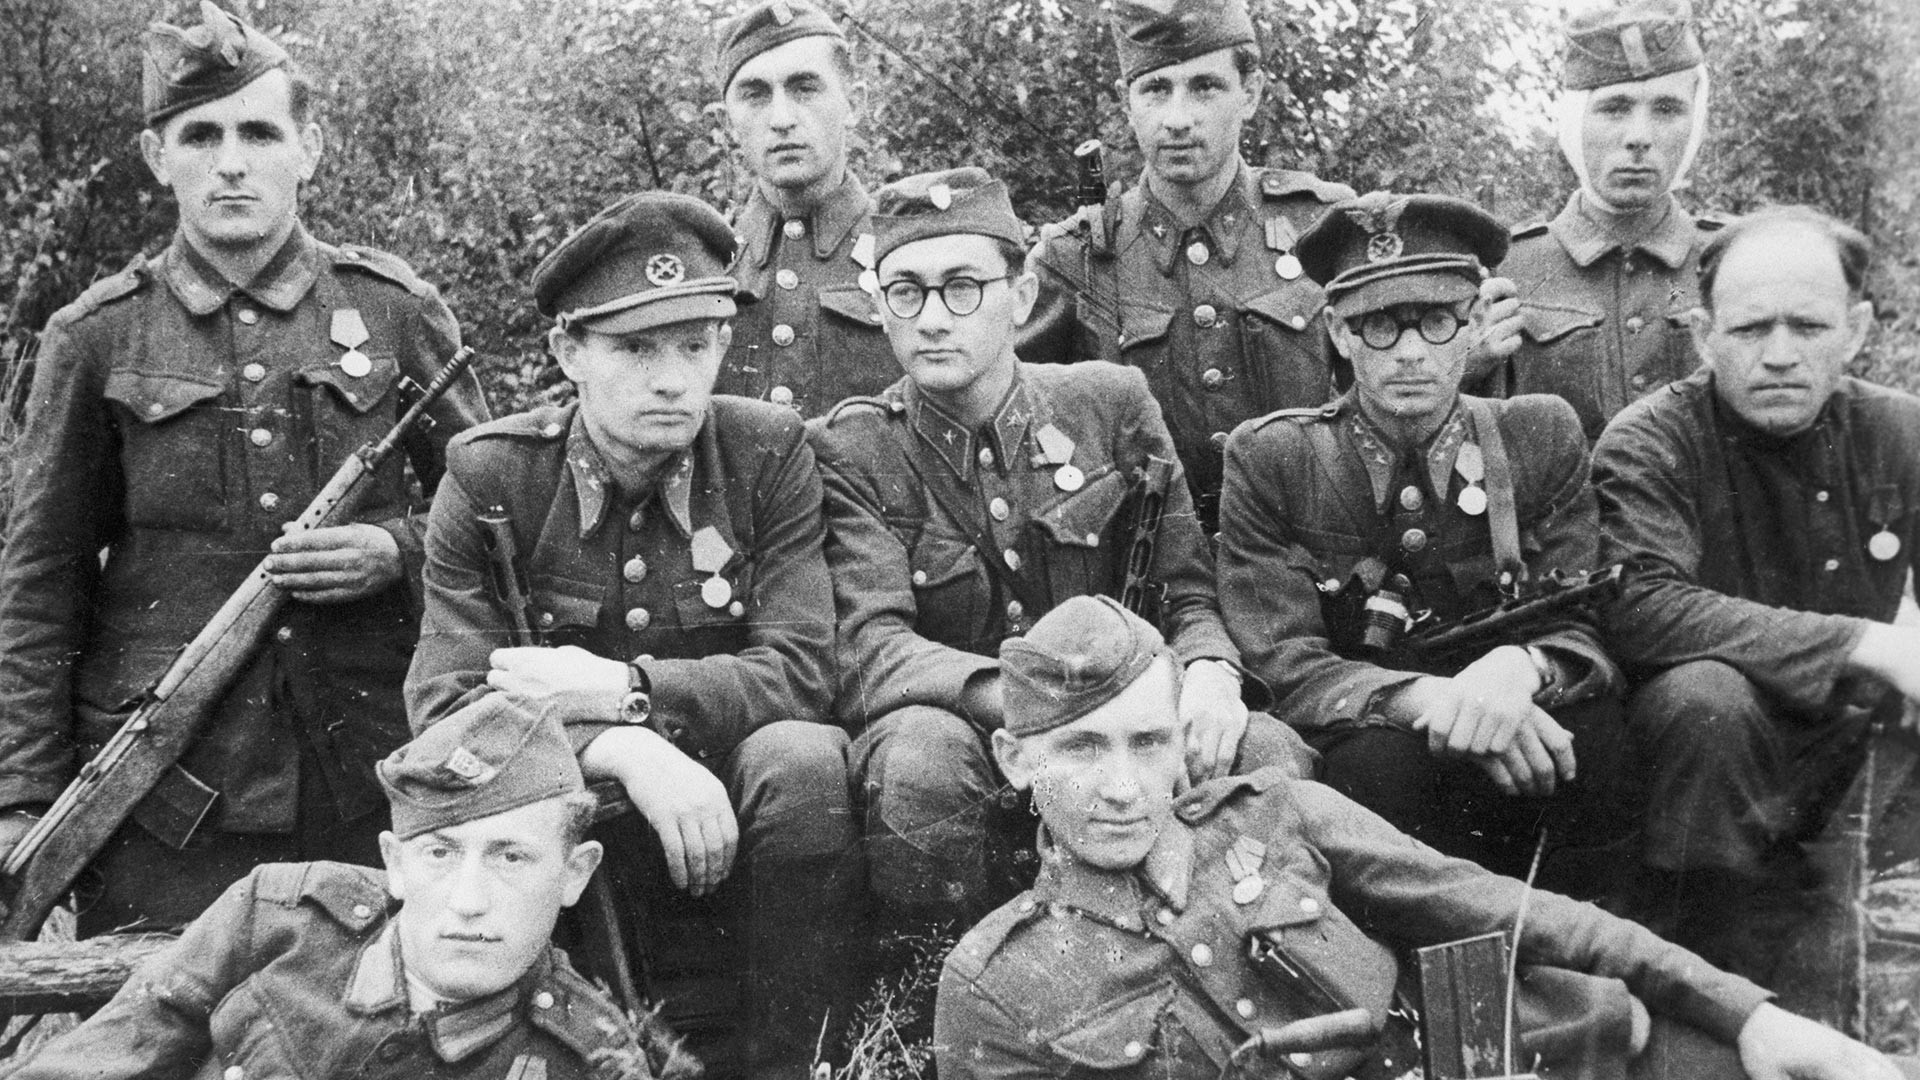 Slovak soldiers who defected to the side of the Soviet partisans.